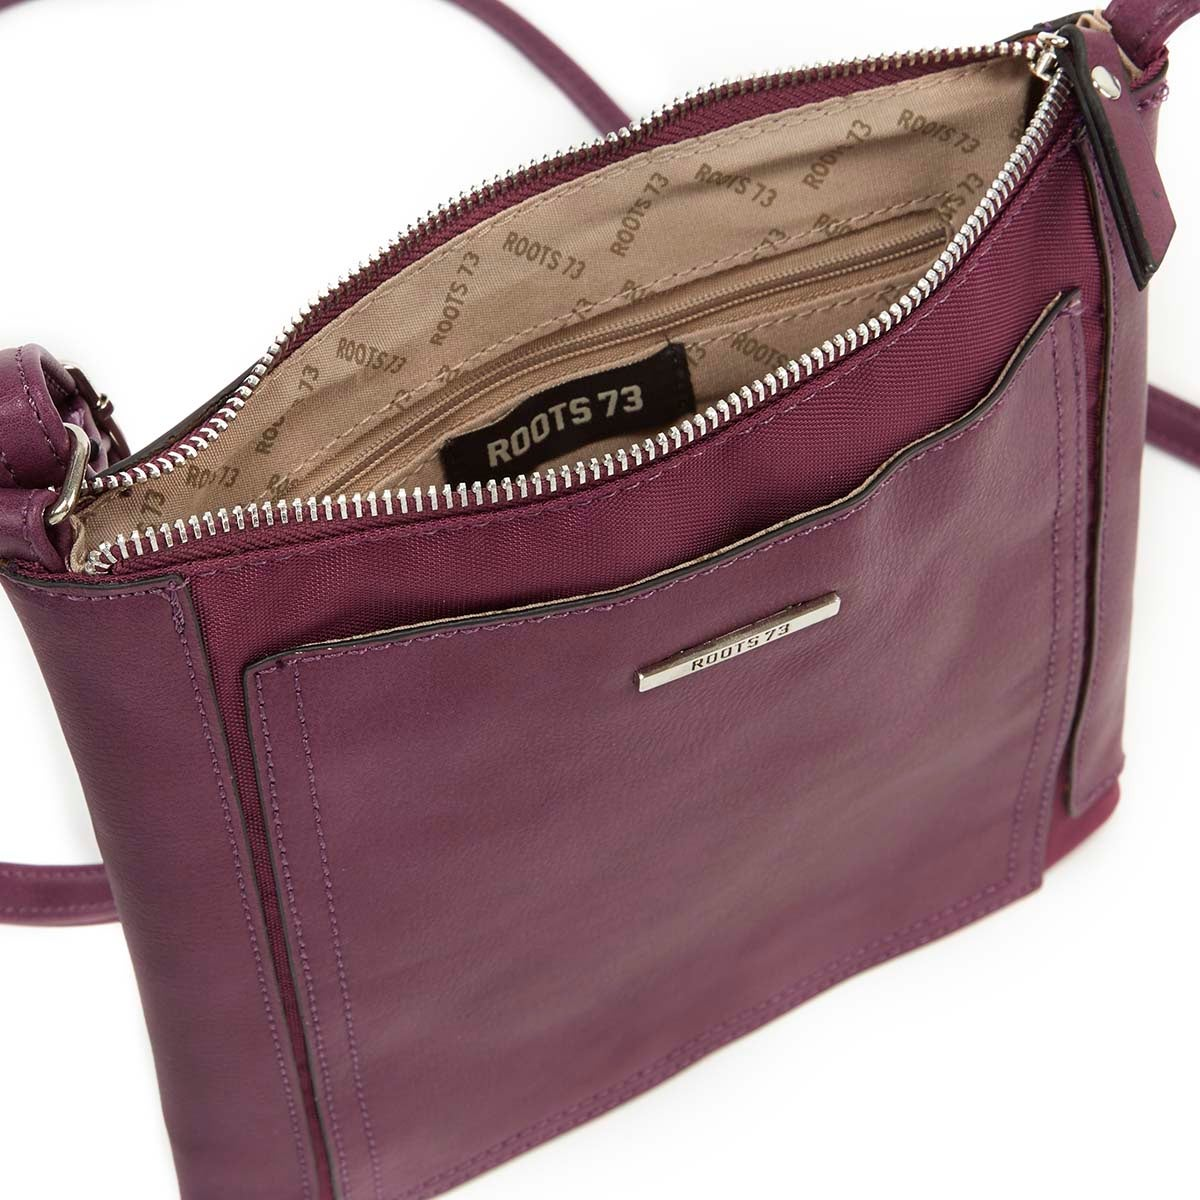 Lds purple north south cross body bag